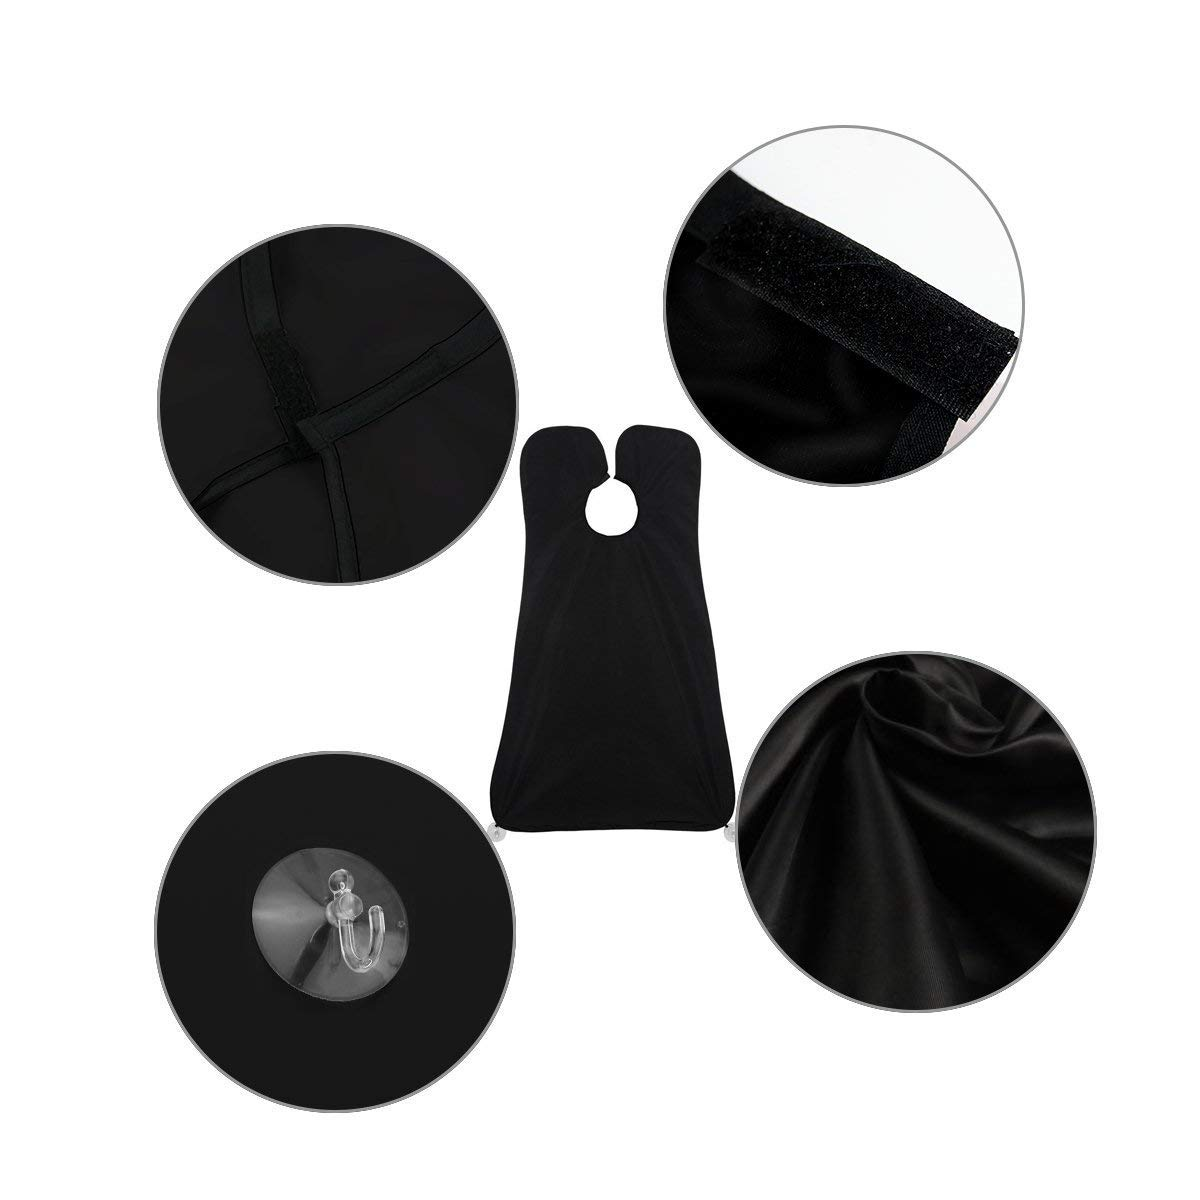 Shaving Grooming Apron, Justime Hair Cutting Cape,Beard Bib Shaving Apron,Waterproof Cloth Hair Catcher Grooming Cape, Trimming Cloak with 2 Suction Cups for Man or Household Cleaning Protections(Black)